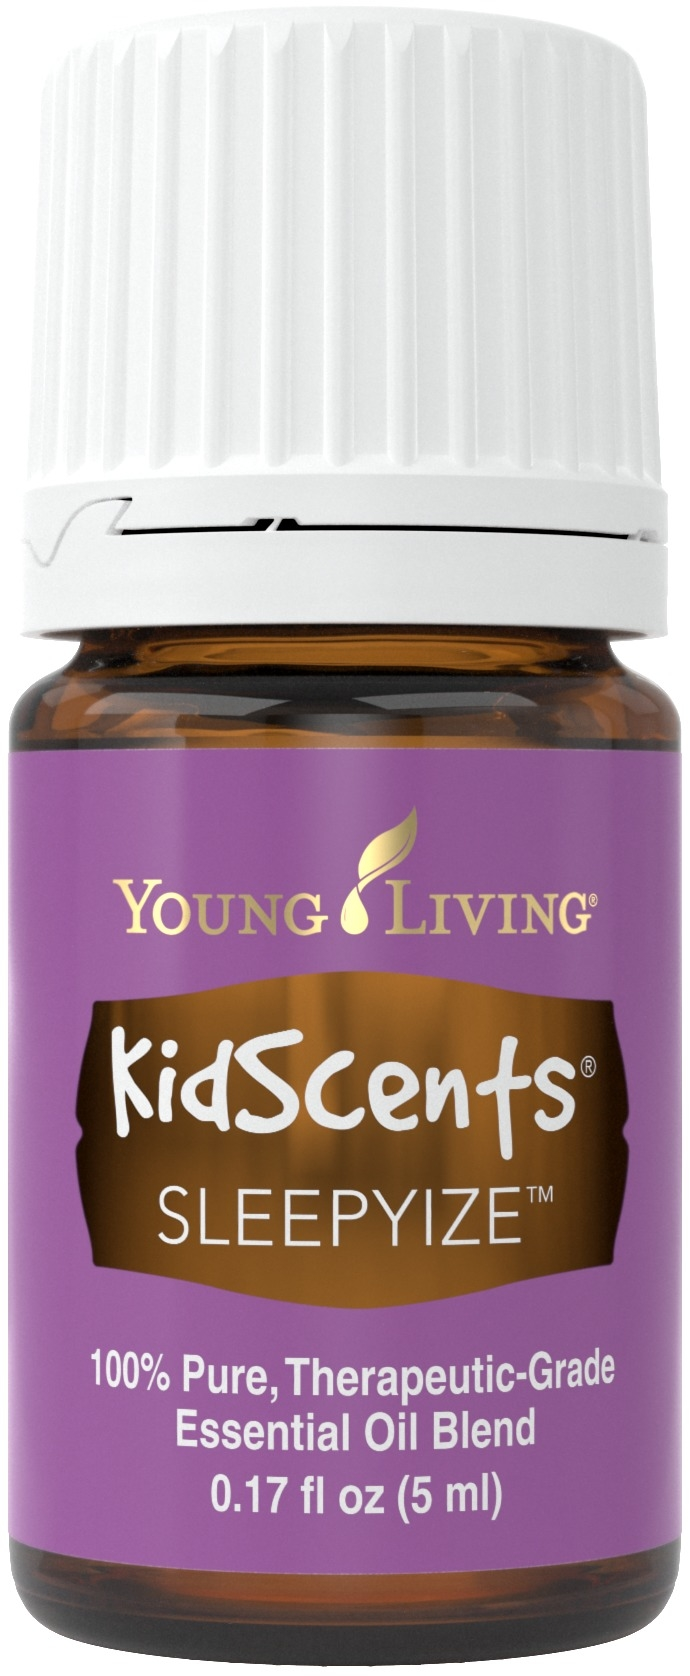 Kidscents Sleepyize Essential Oil Blend para niños